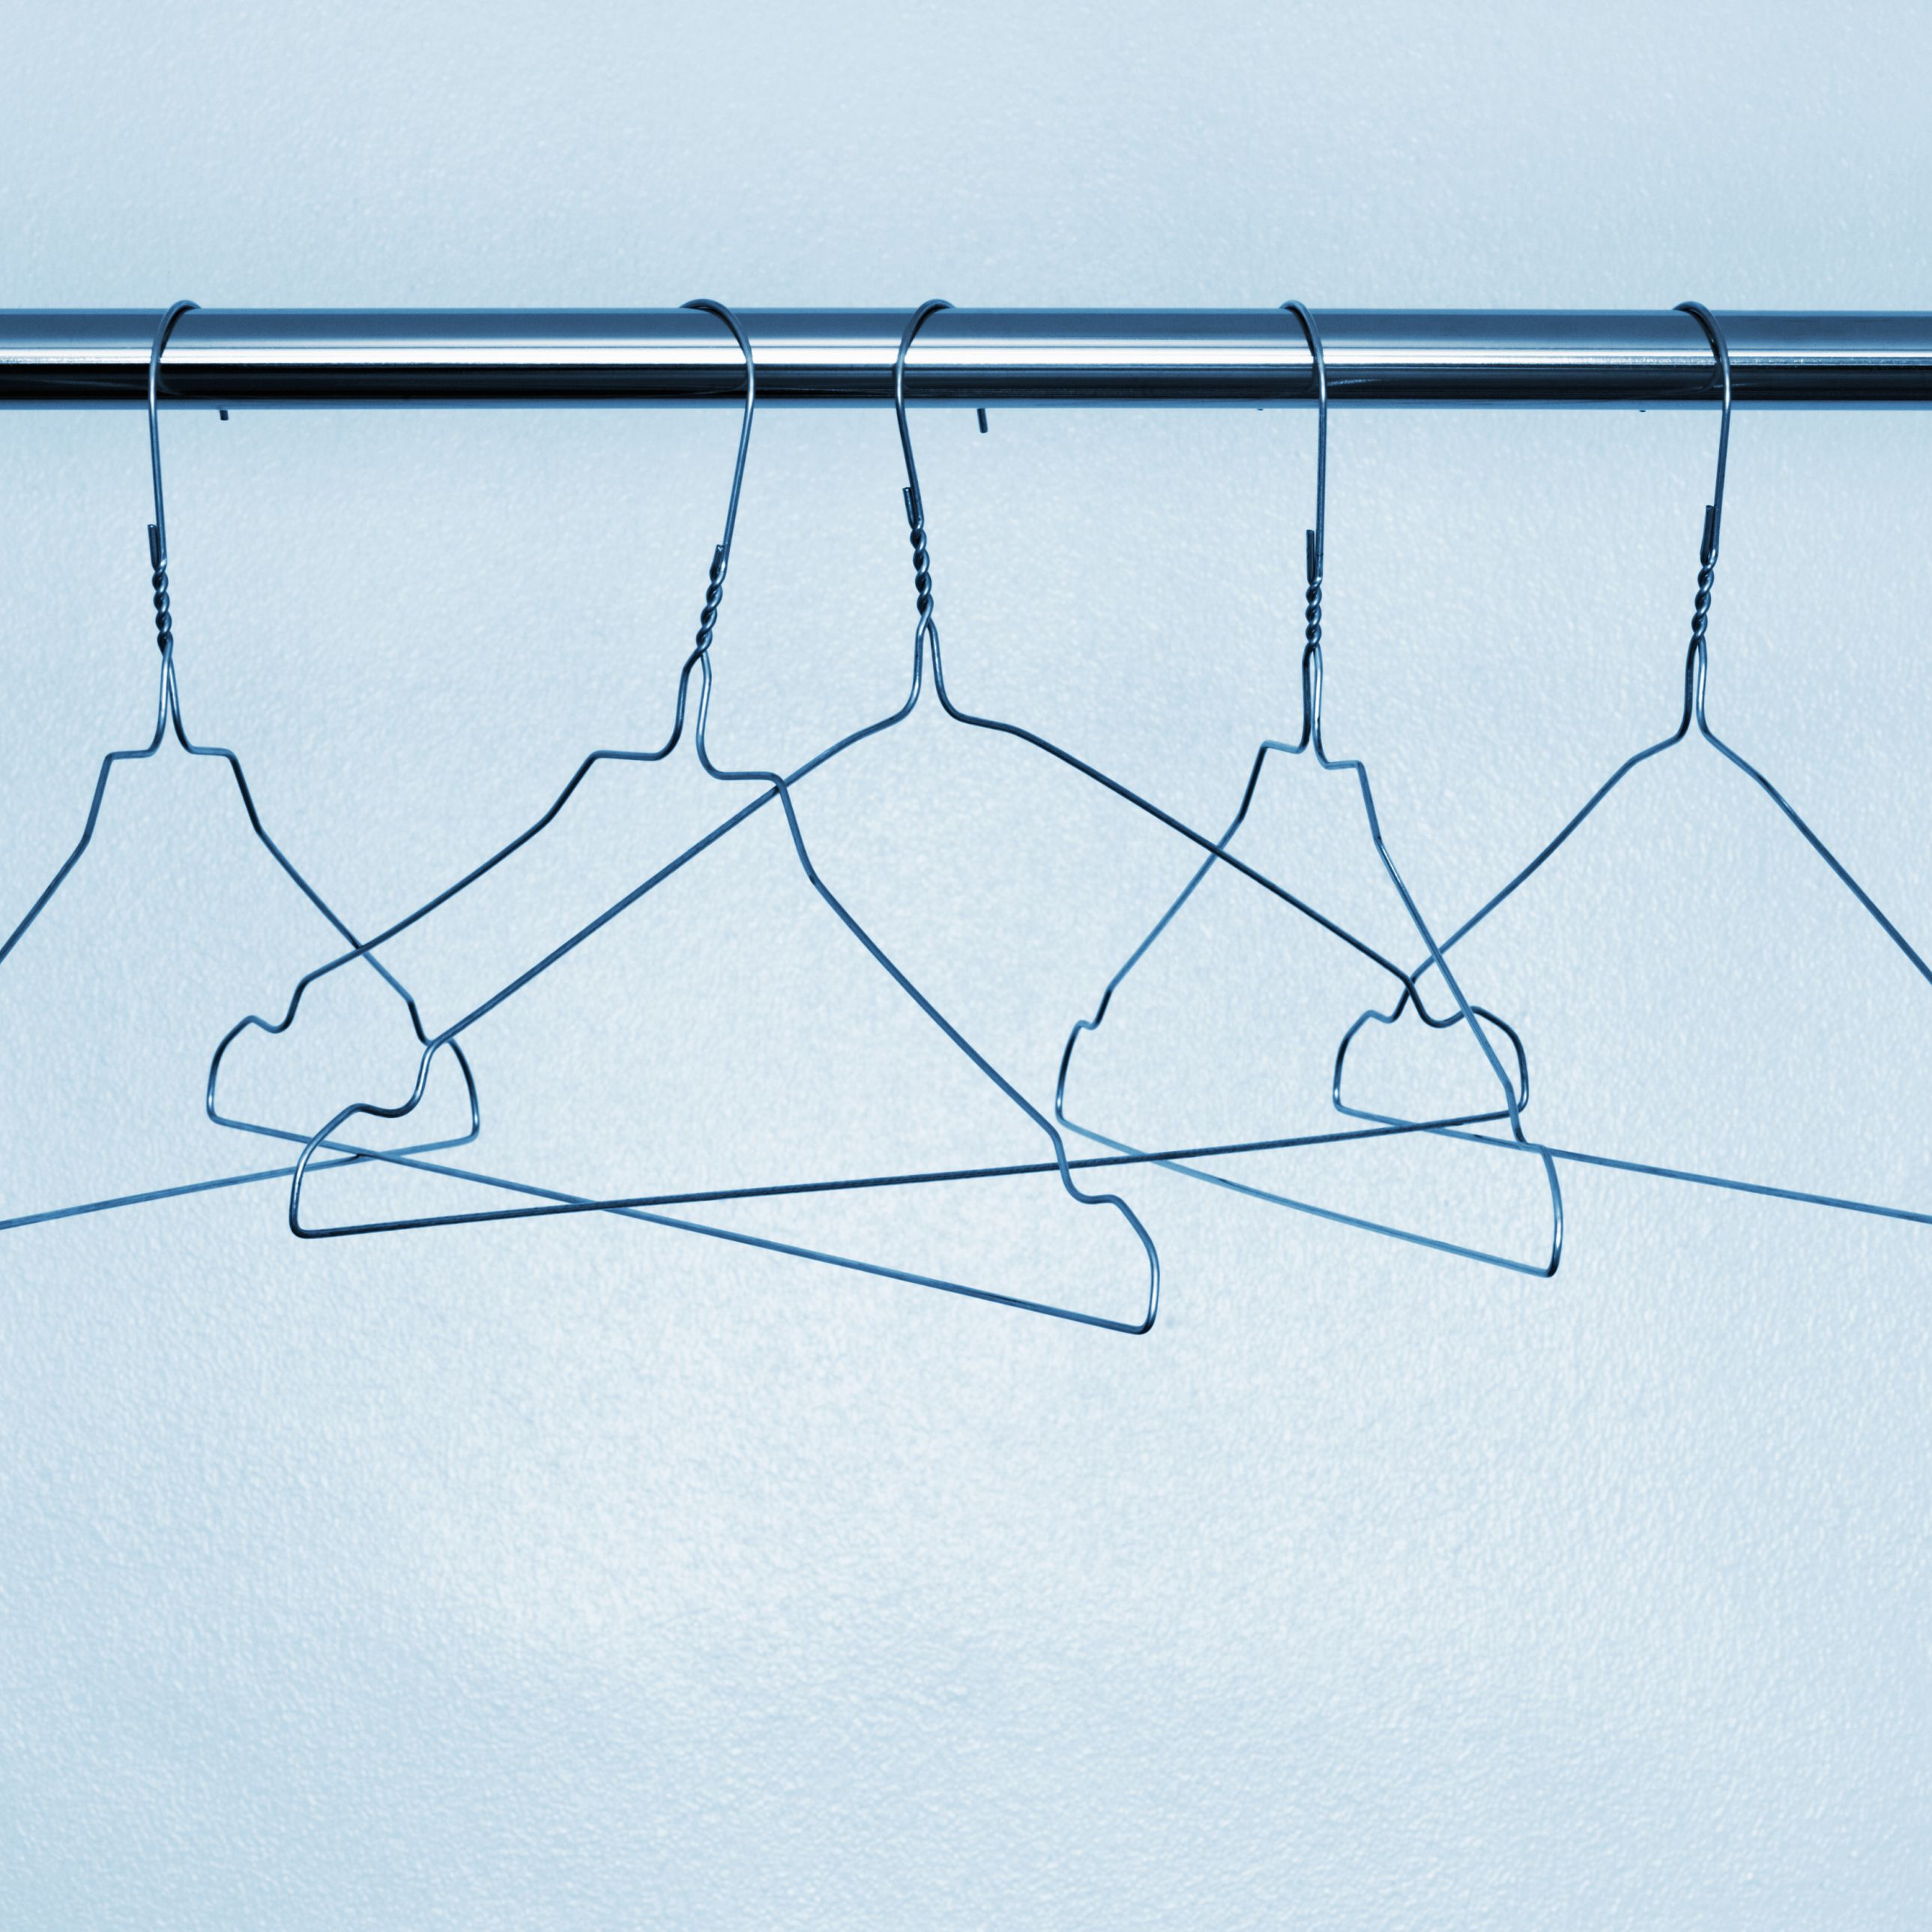 Albert J. Parkhouse: Inventor of the First Coat Hanger on